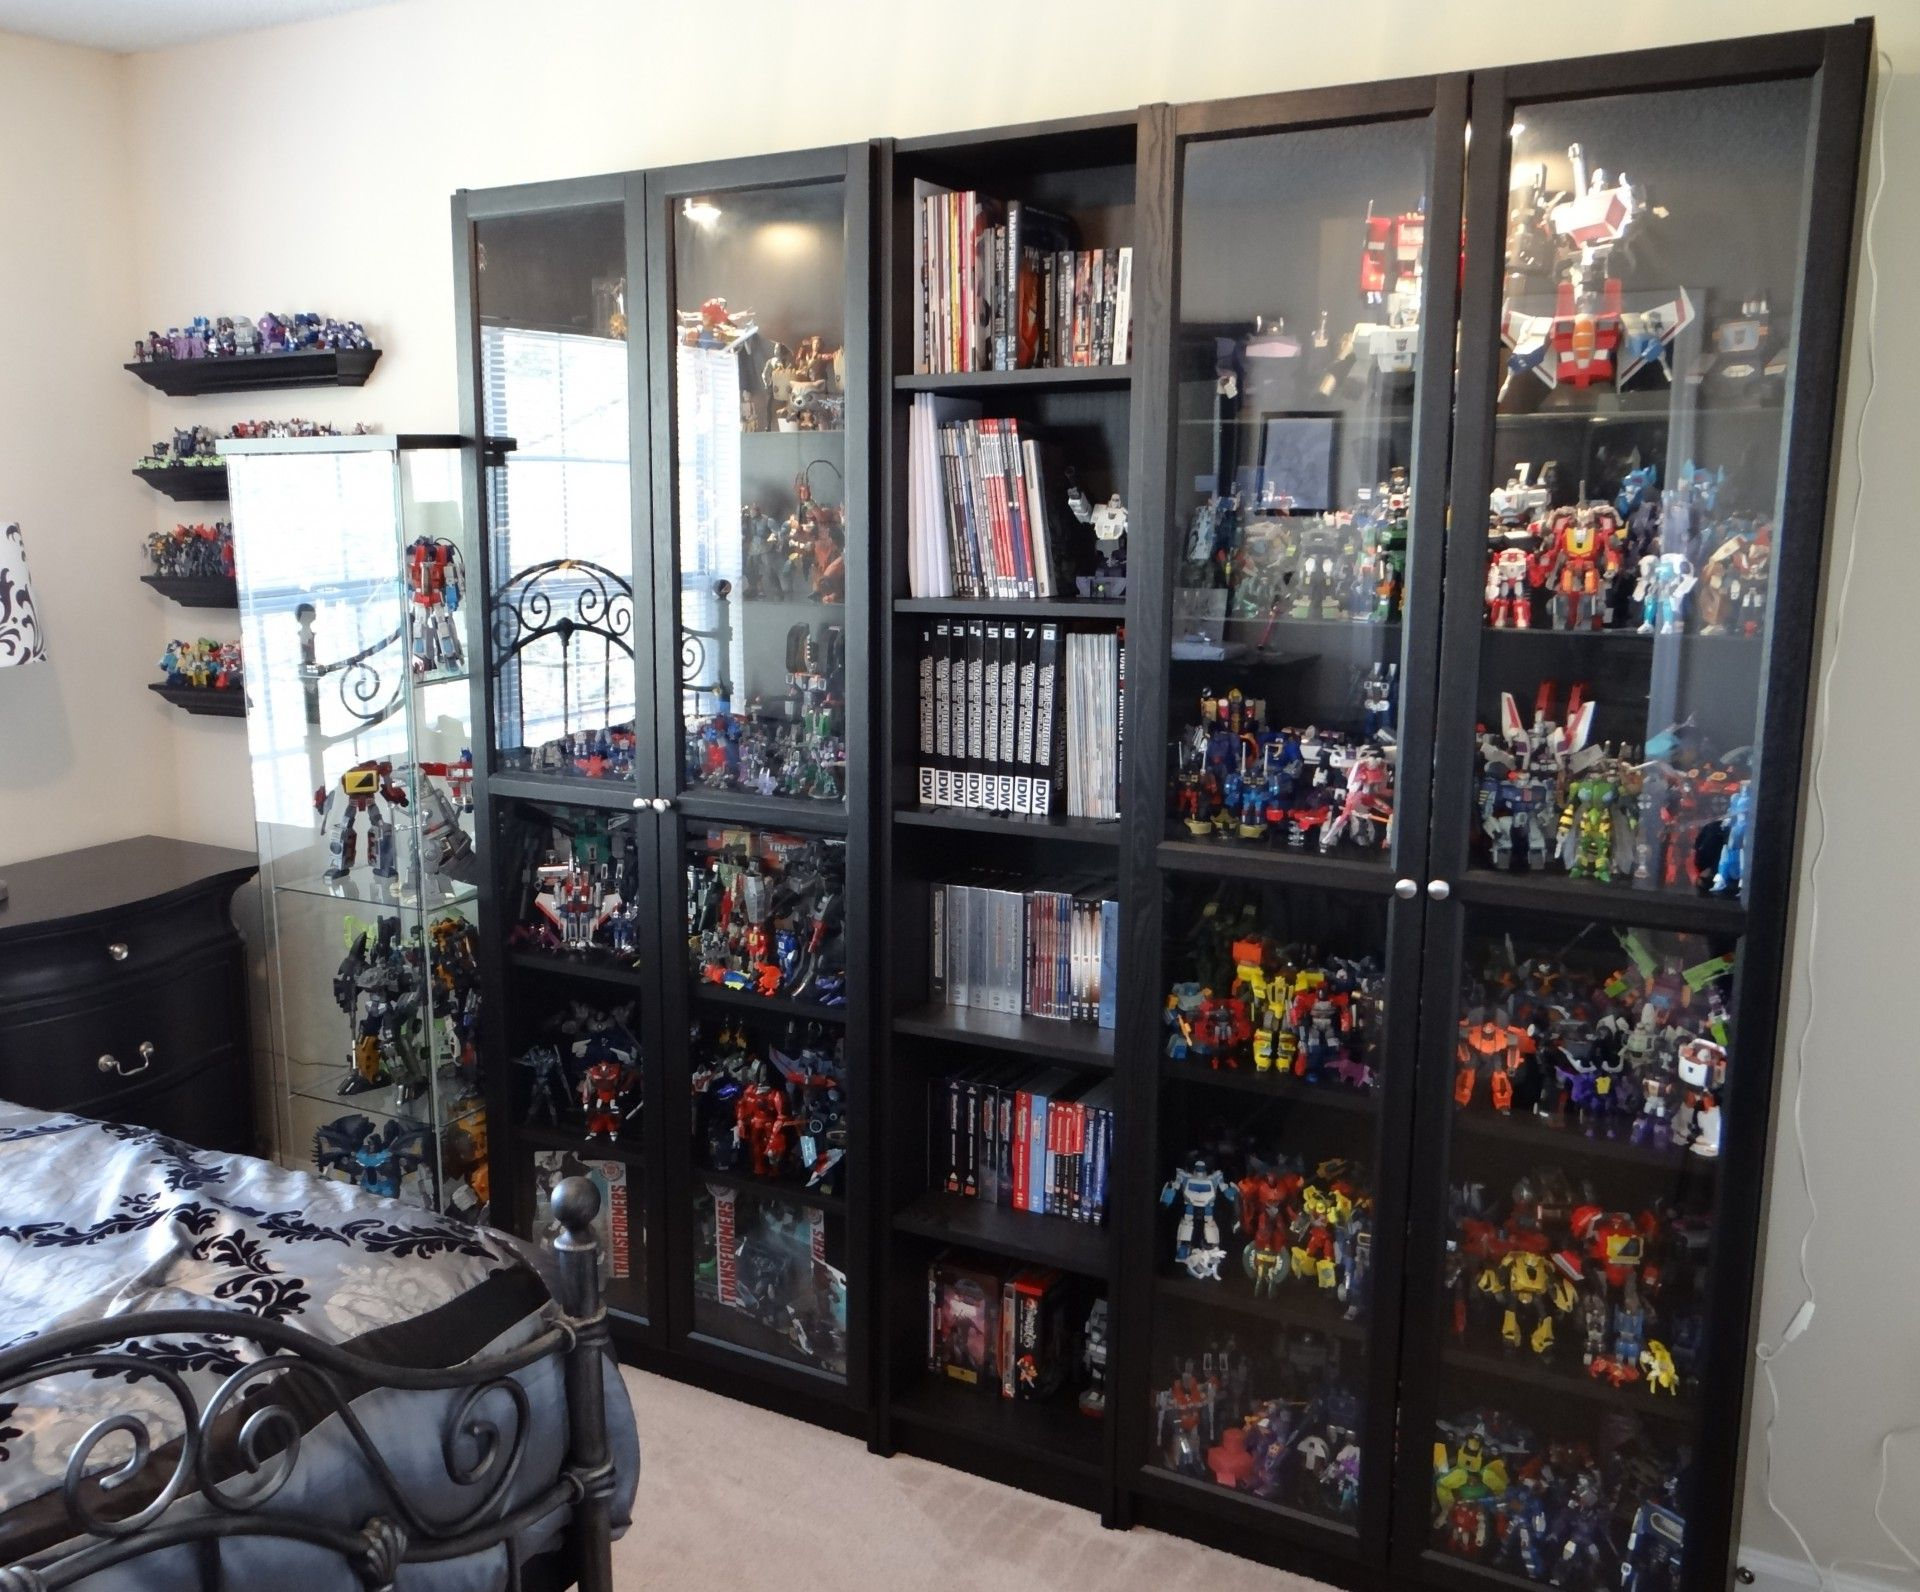 Rael S Eclectic New Ikea Display Tfw2005 Com Spielzimmer